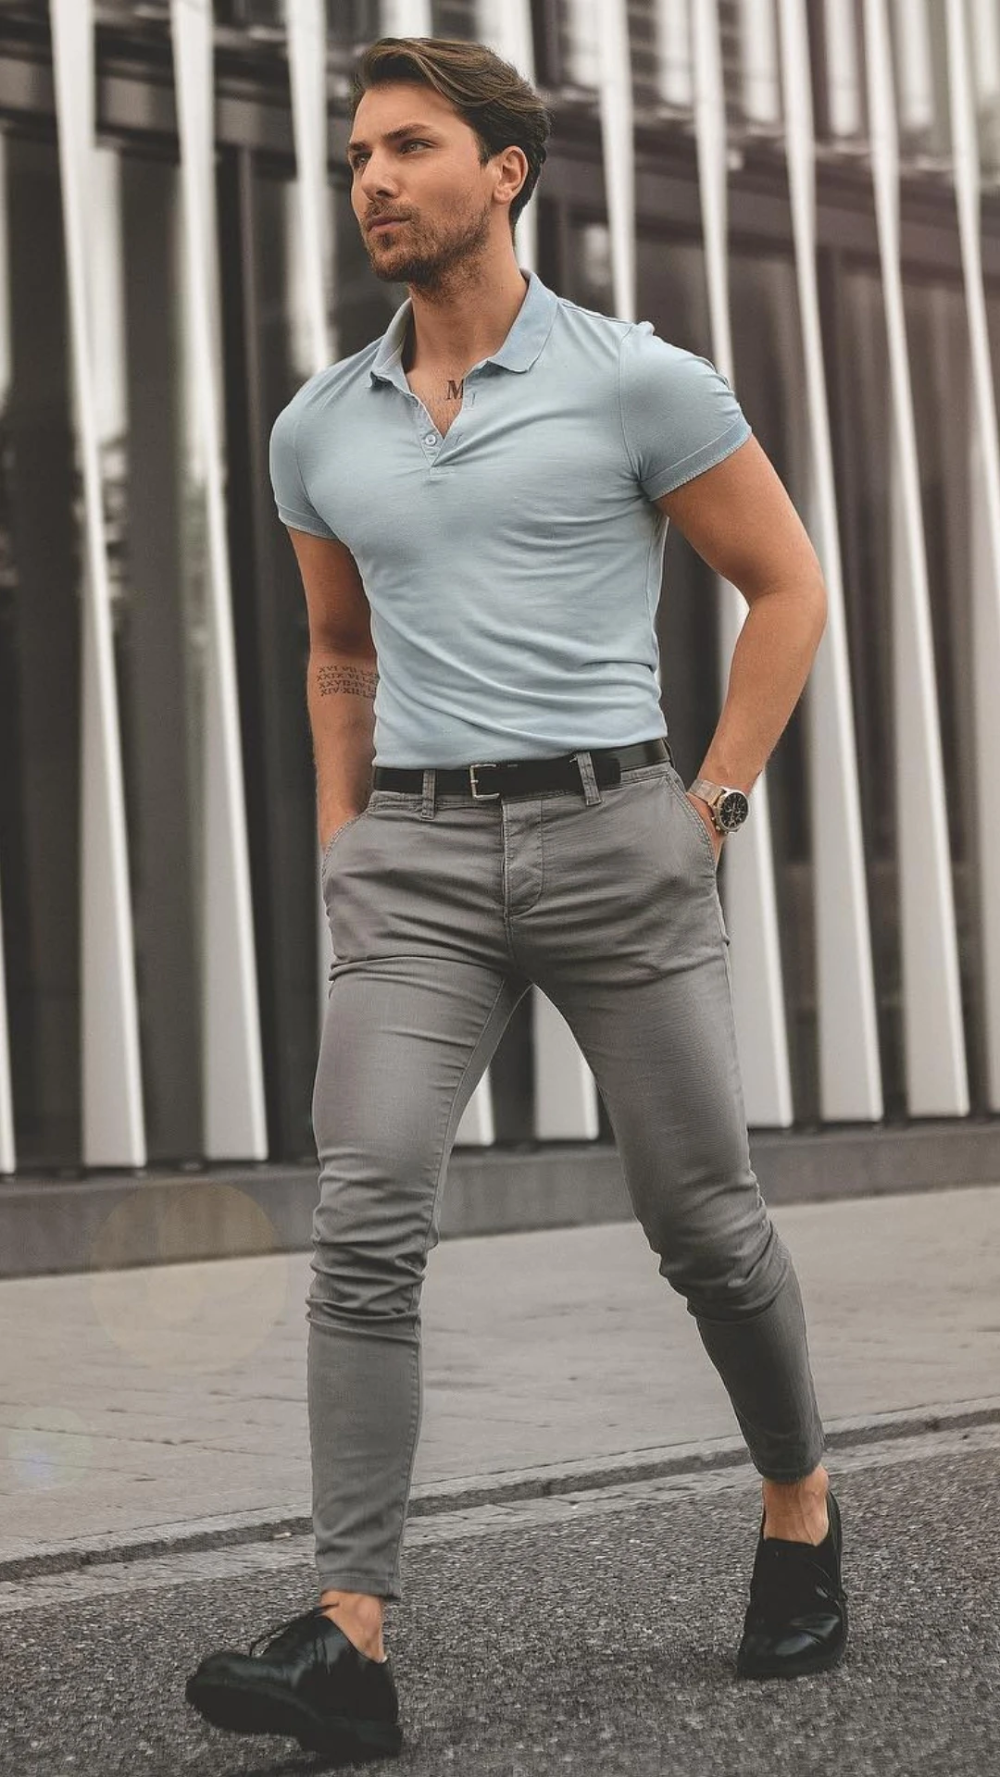 LIGHT BLUE/GREY POLO GREY CHINOS/JEANS   Polo shirt outfits ...